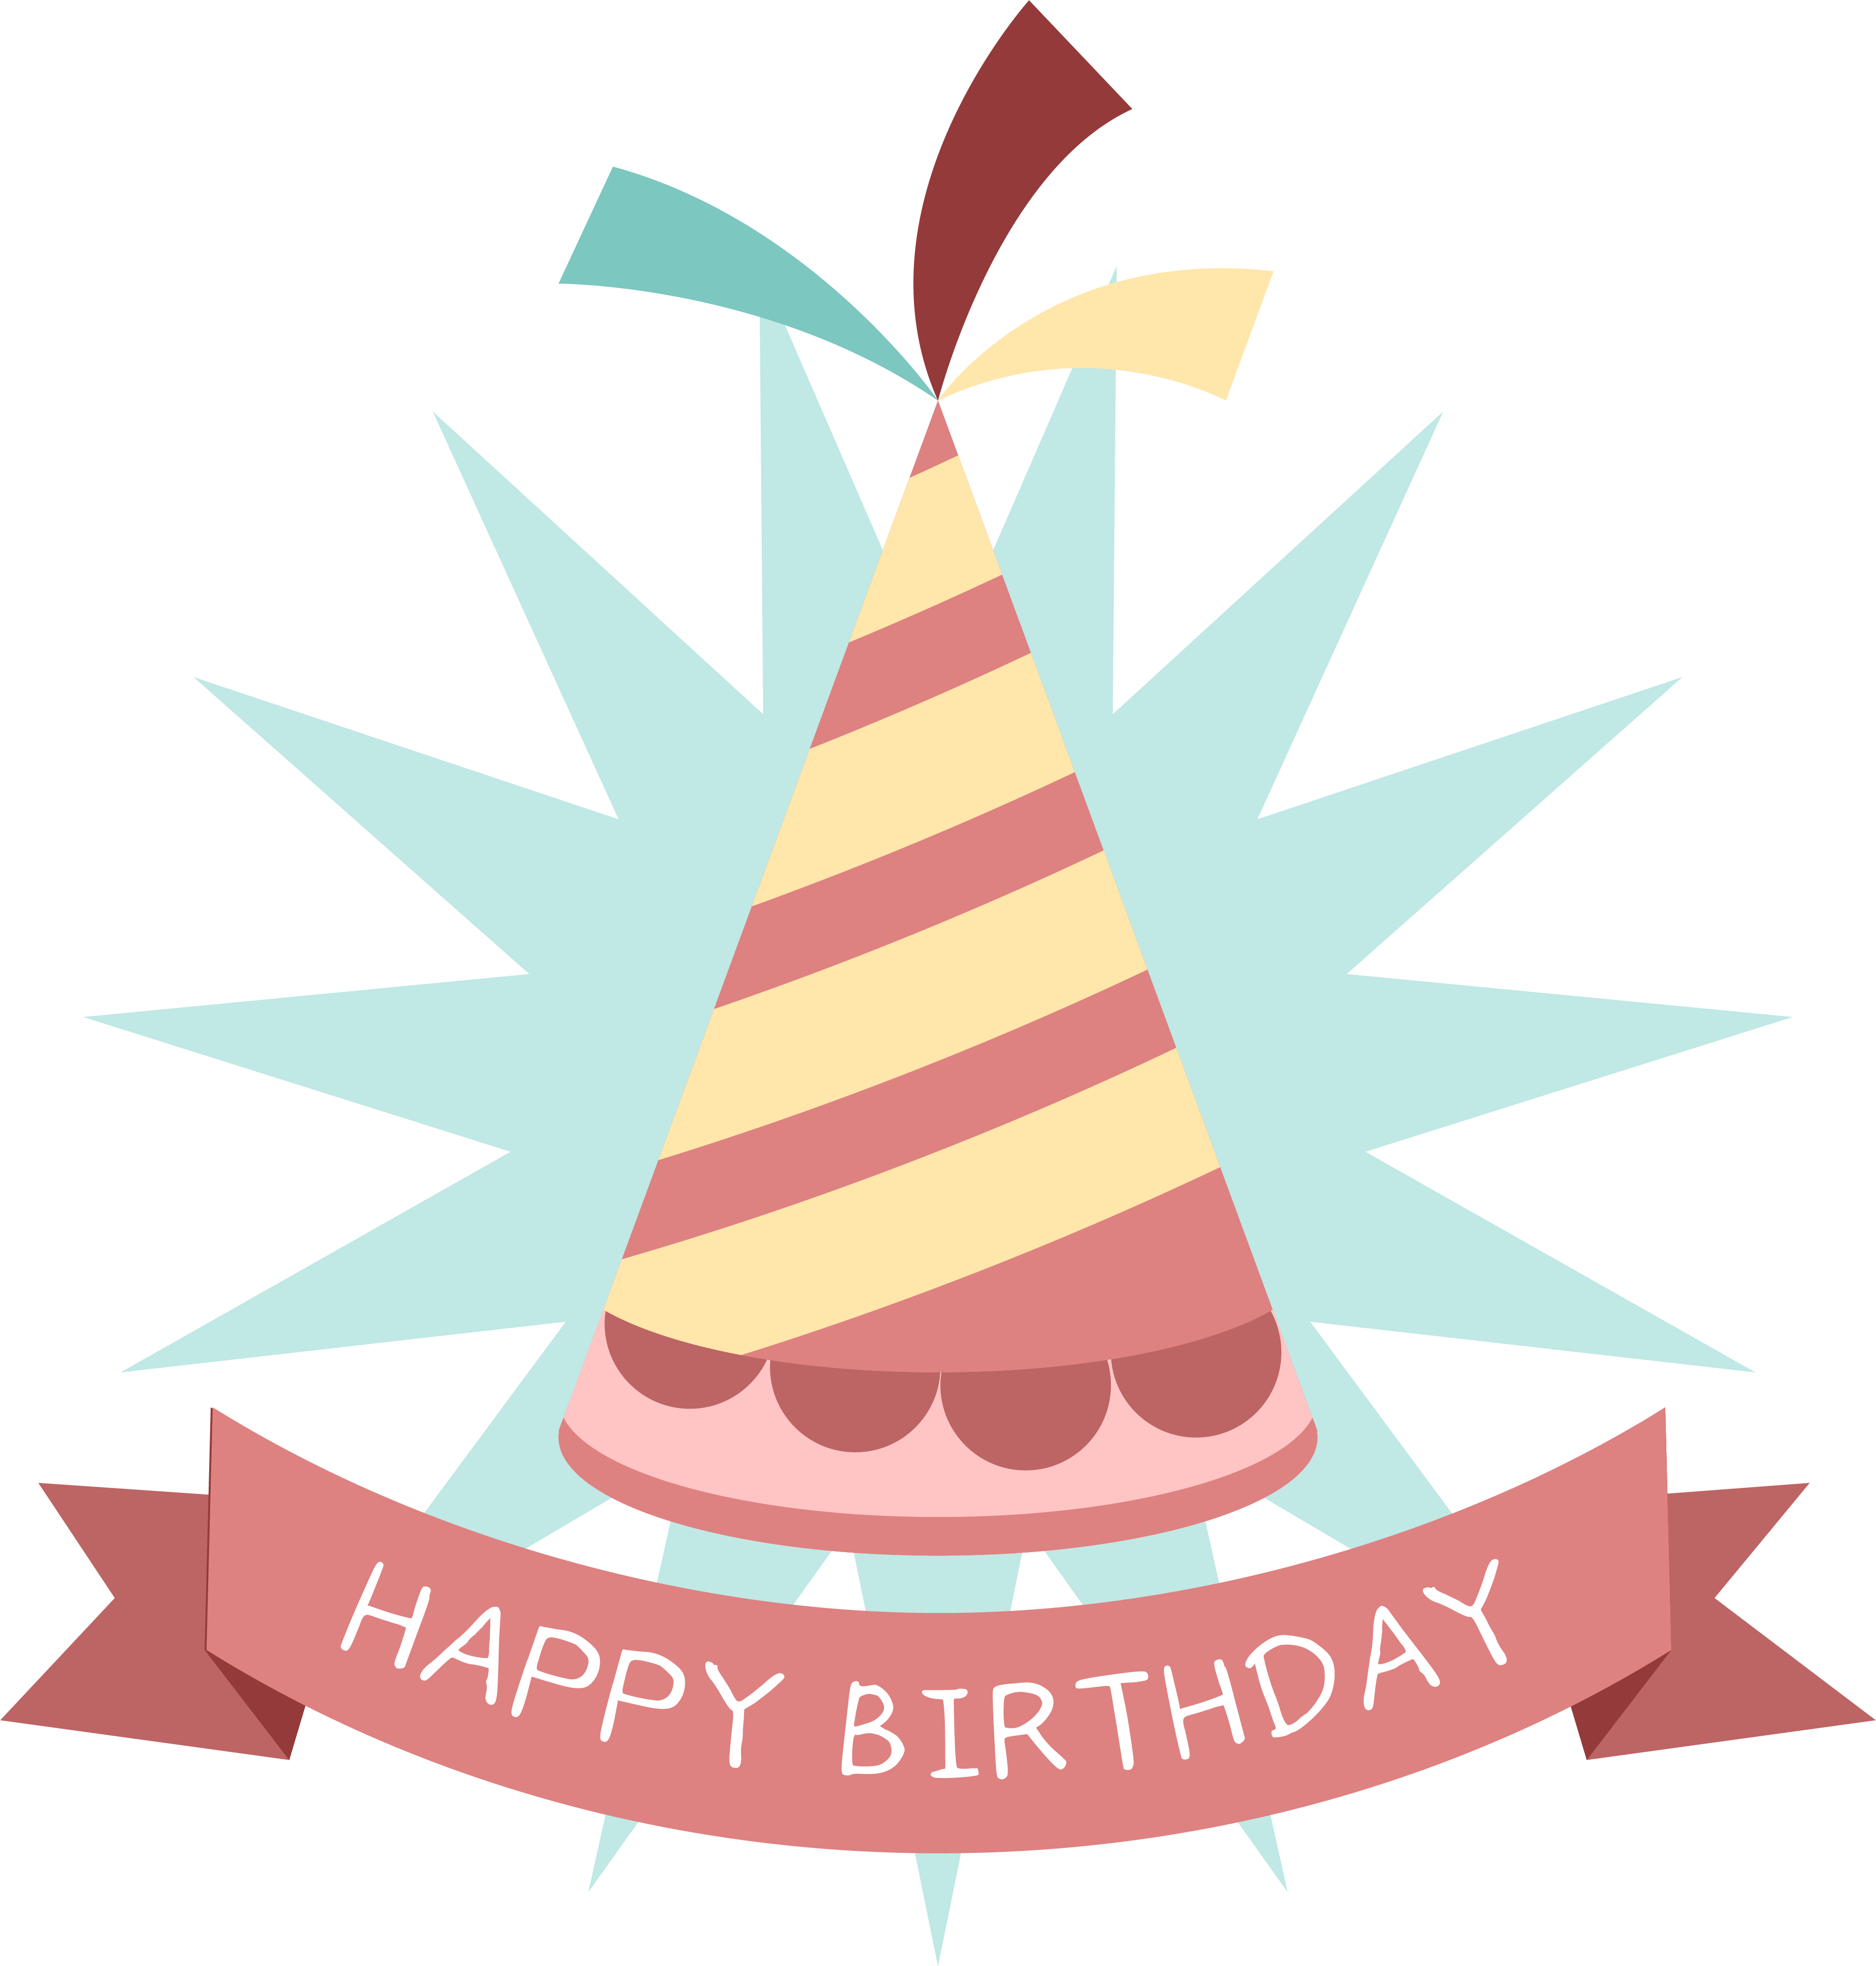 Tree clipart birthday. Party hat sticker clip